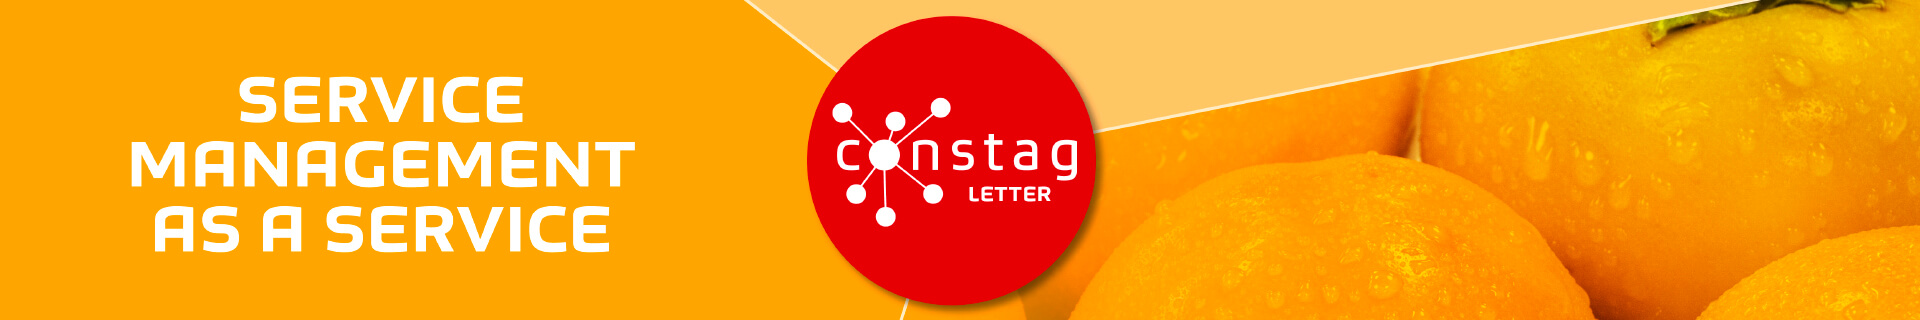 ConstagLETTER Service Management As A Service